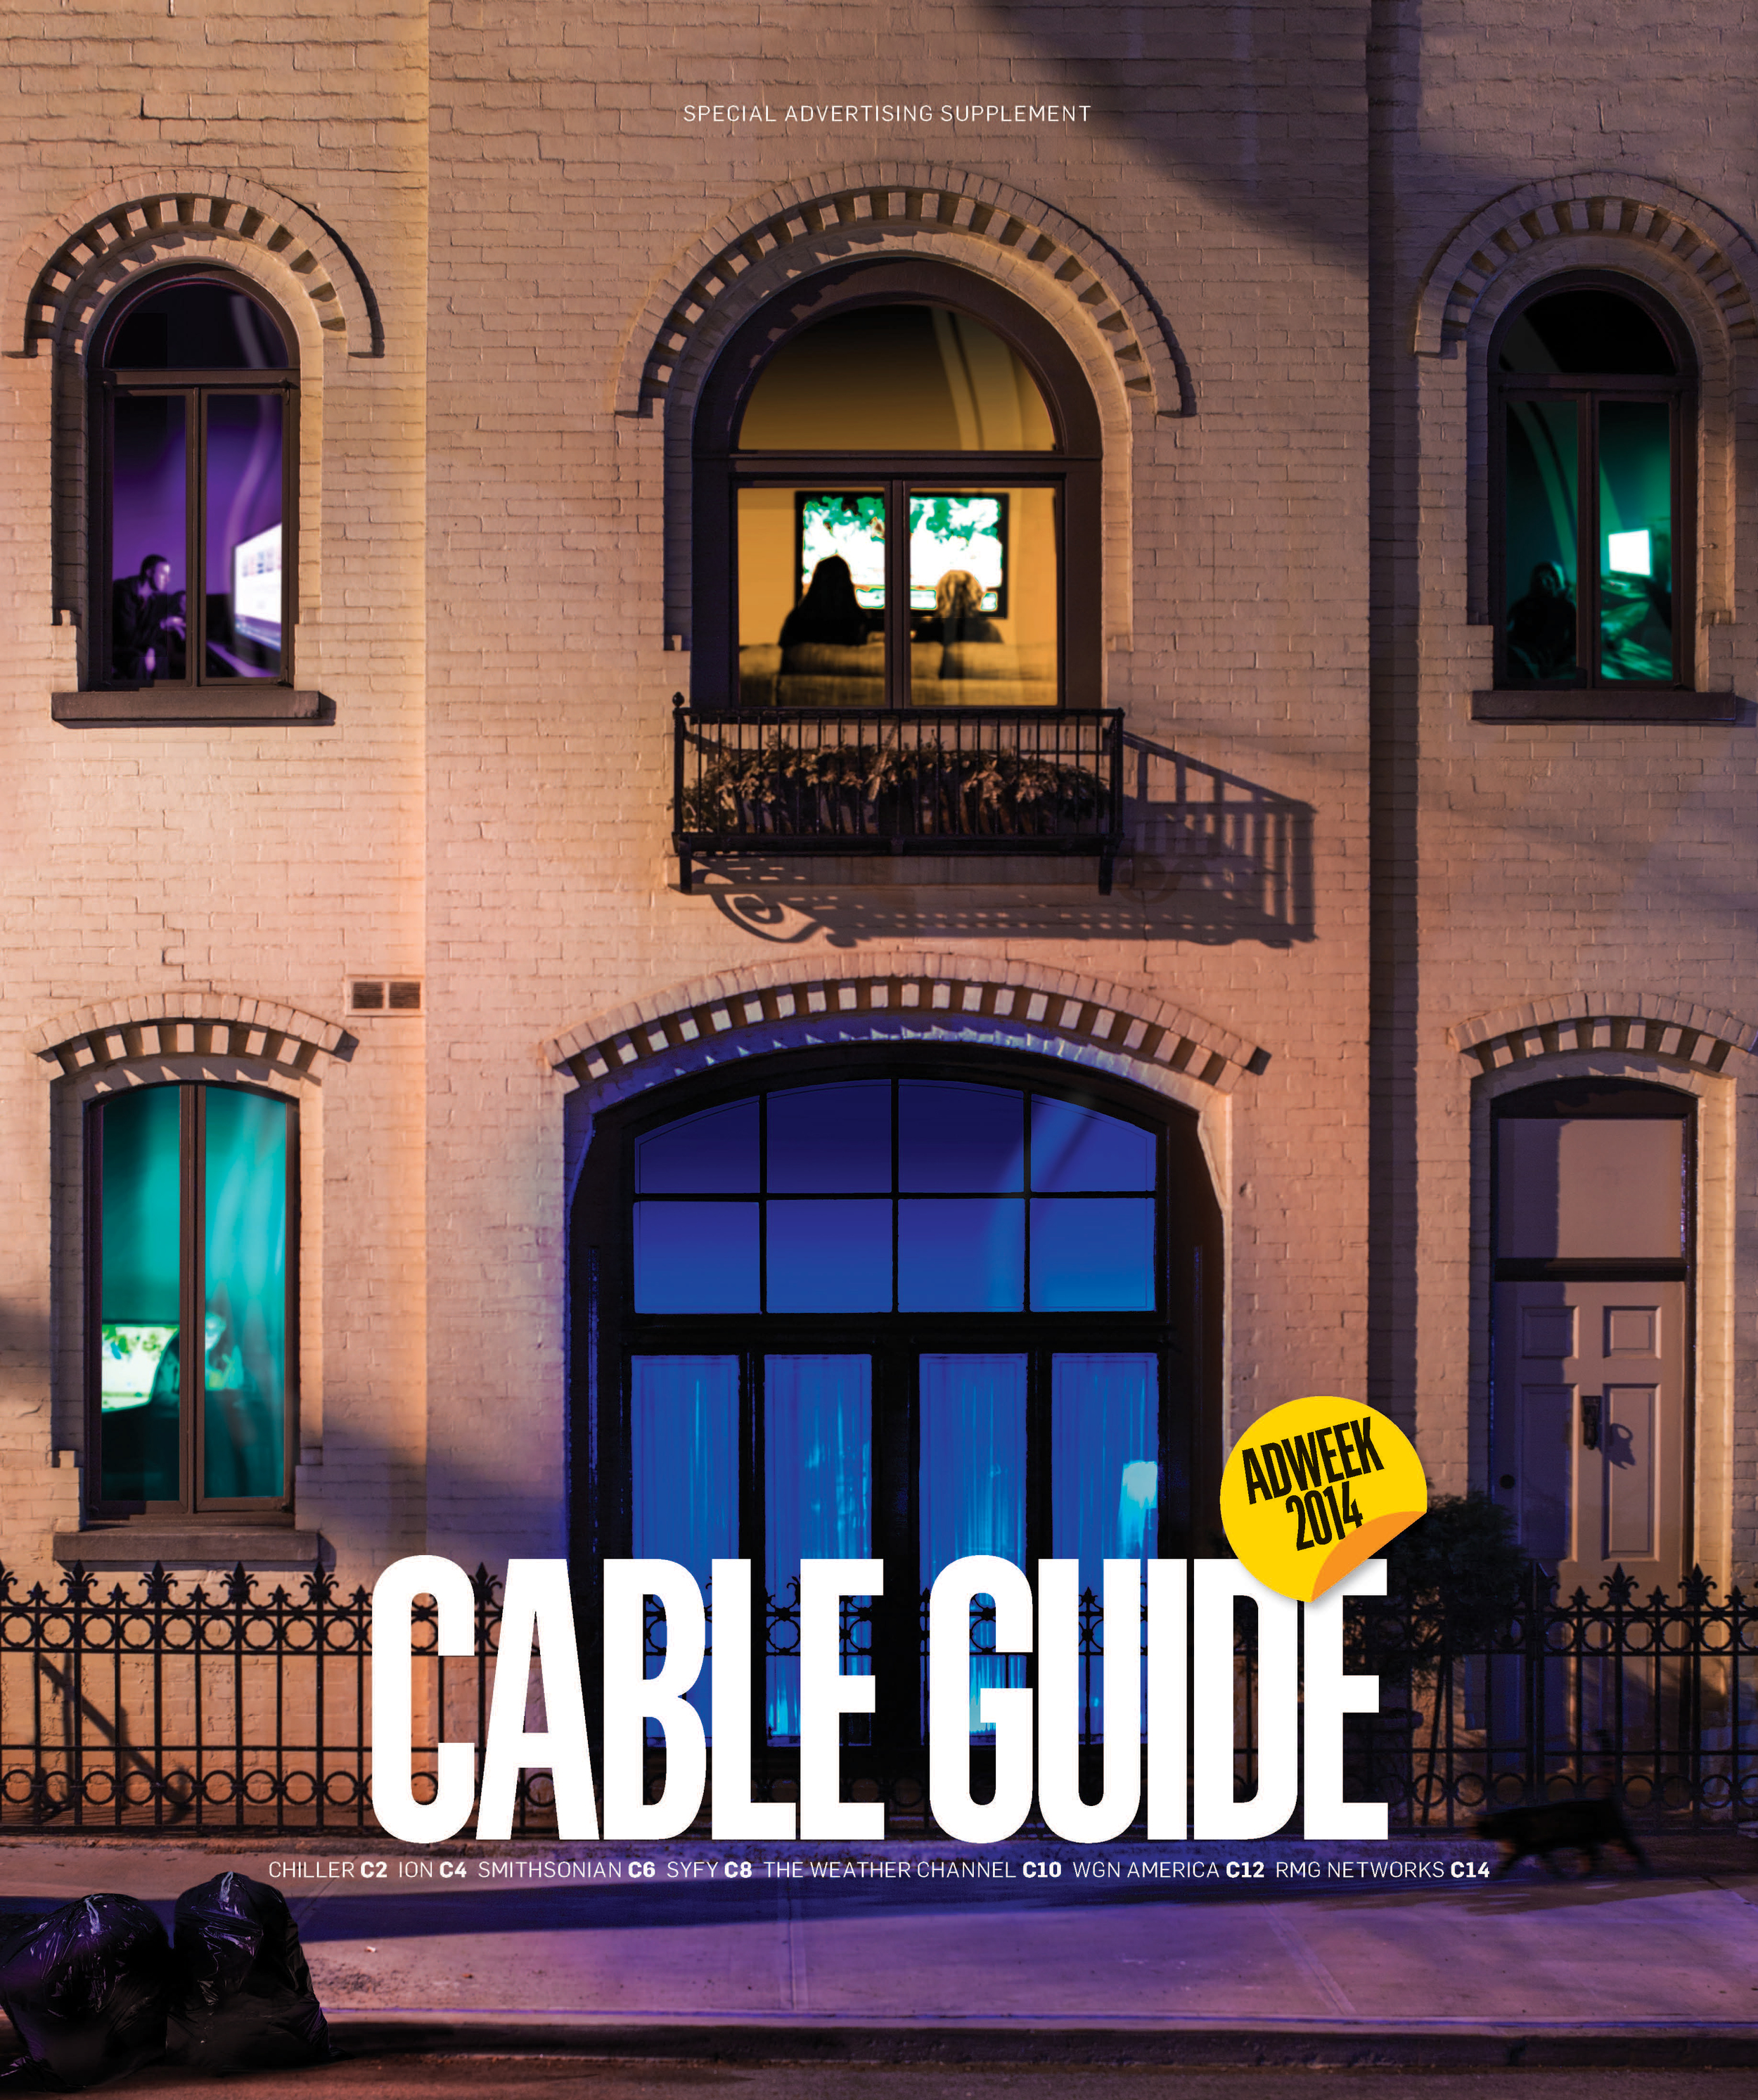 Cable Guide 2014 cover